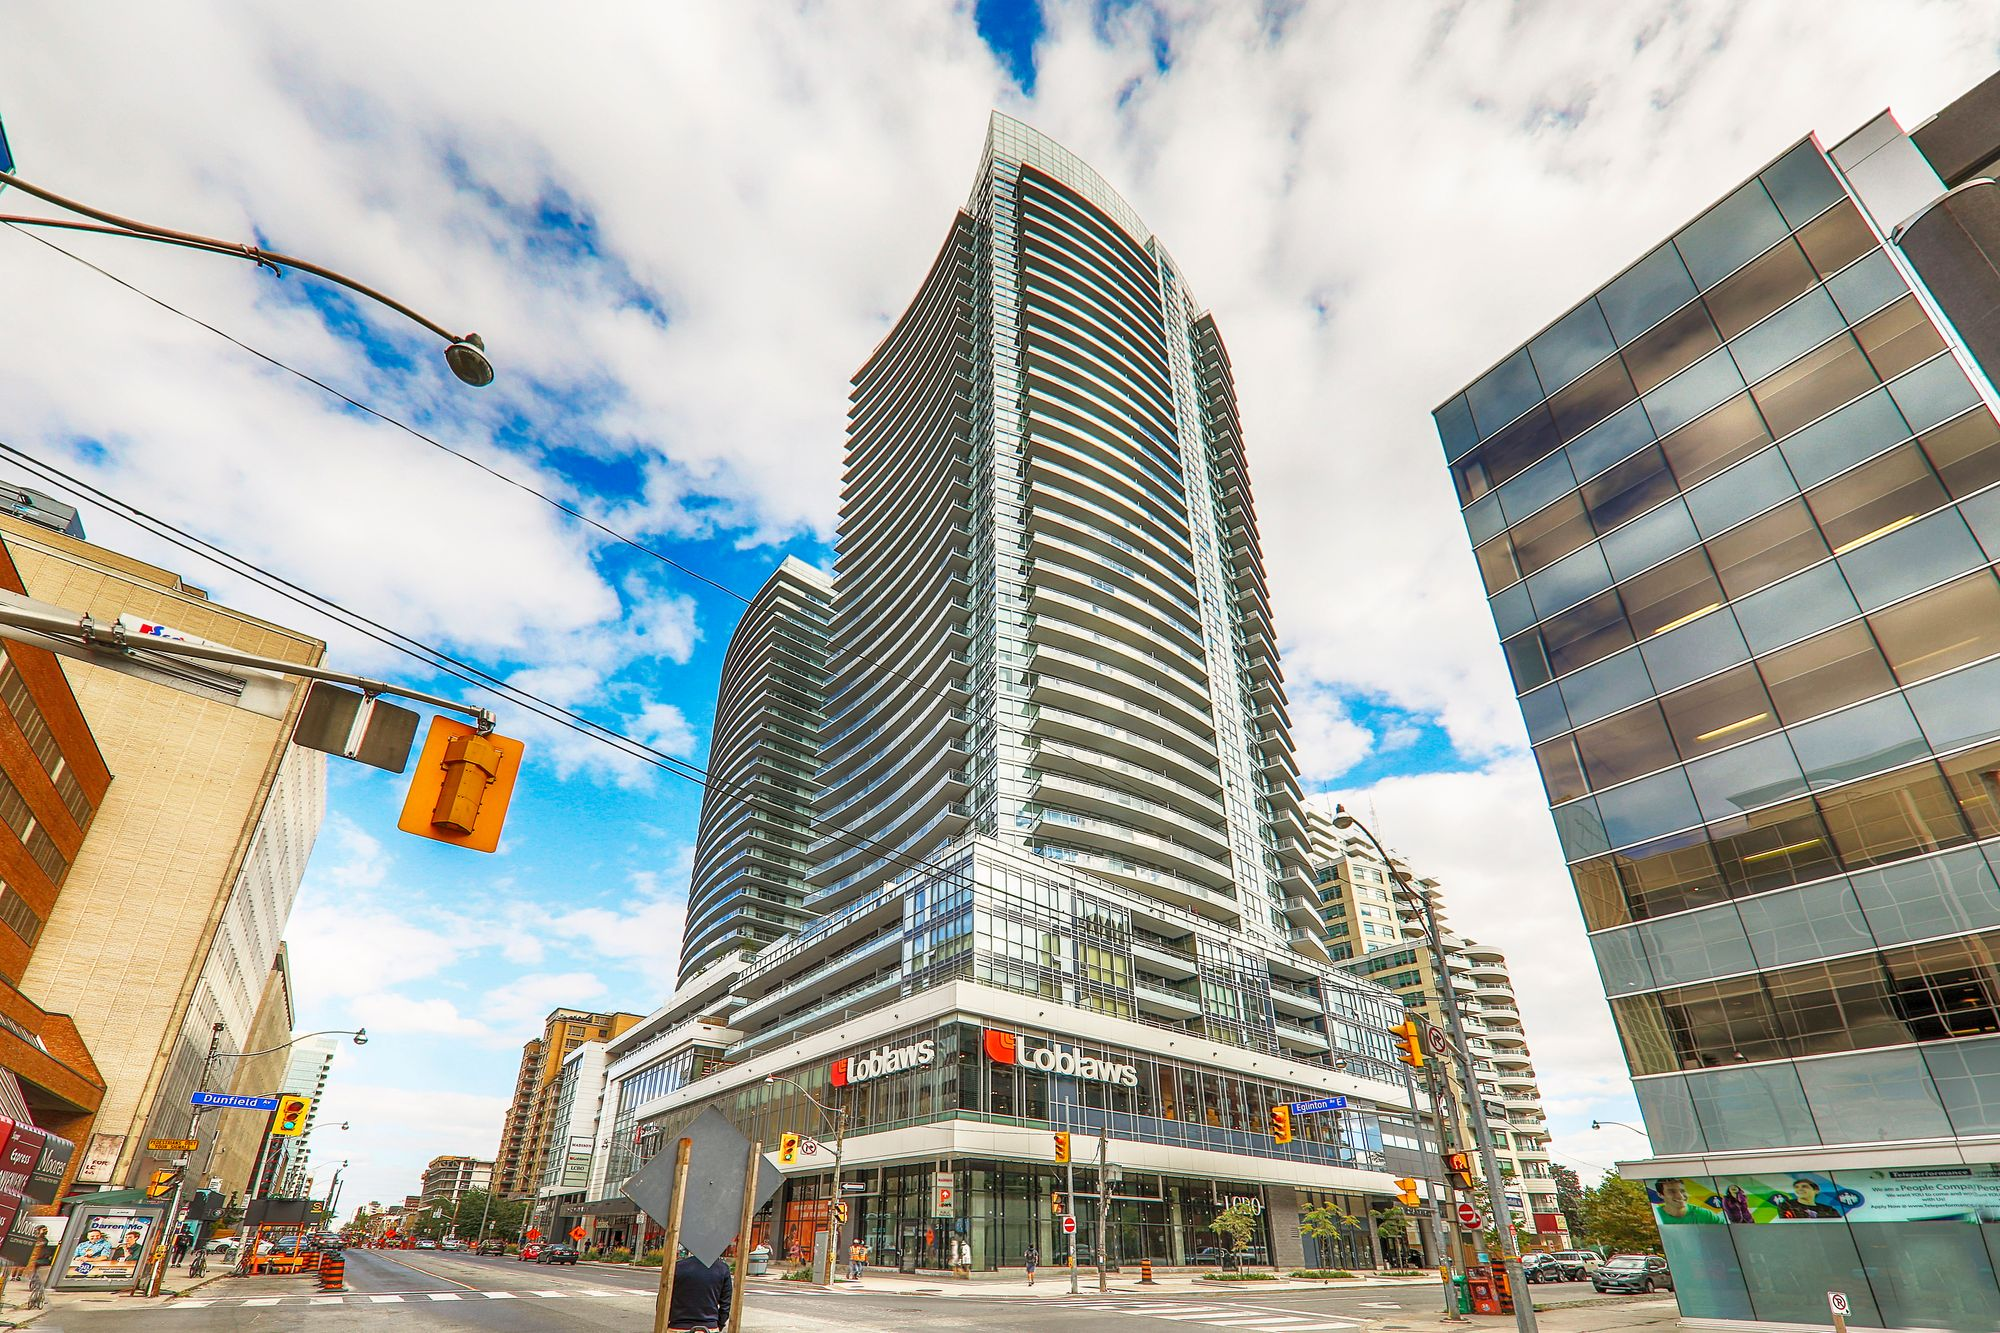 The Madison At Yonge And Eglinton At 89 Dunfield Ave 98 Lillian St 101 Eglinton Ave E 3 Condos For Sale 21 Units For Rent Strata Ca